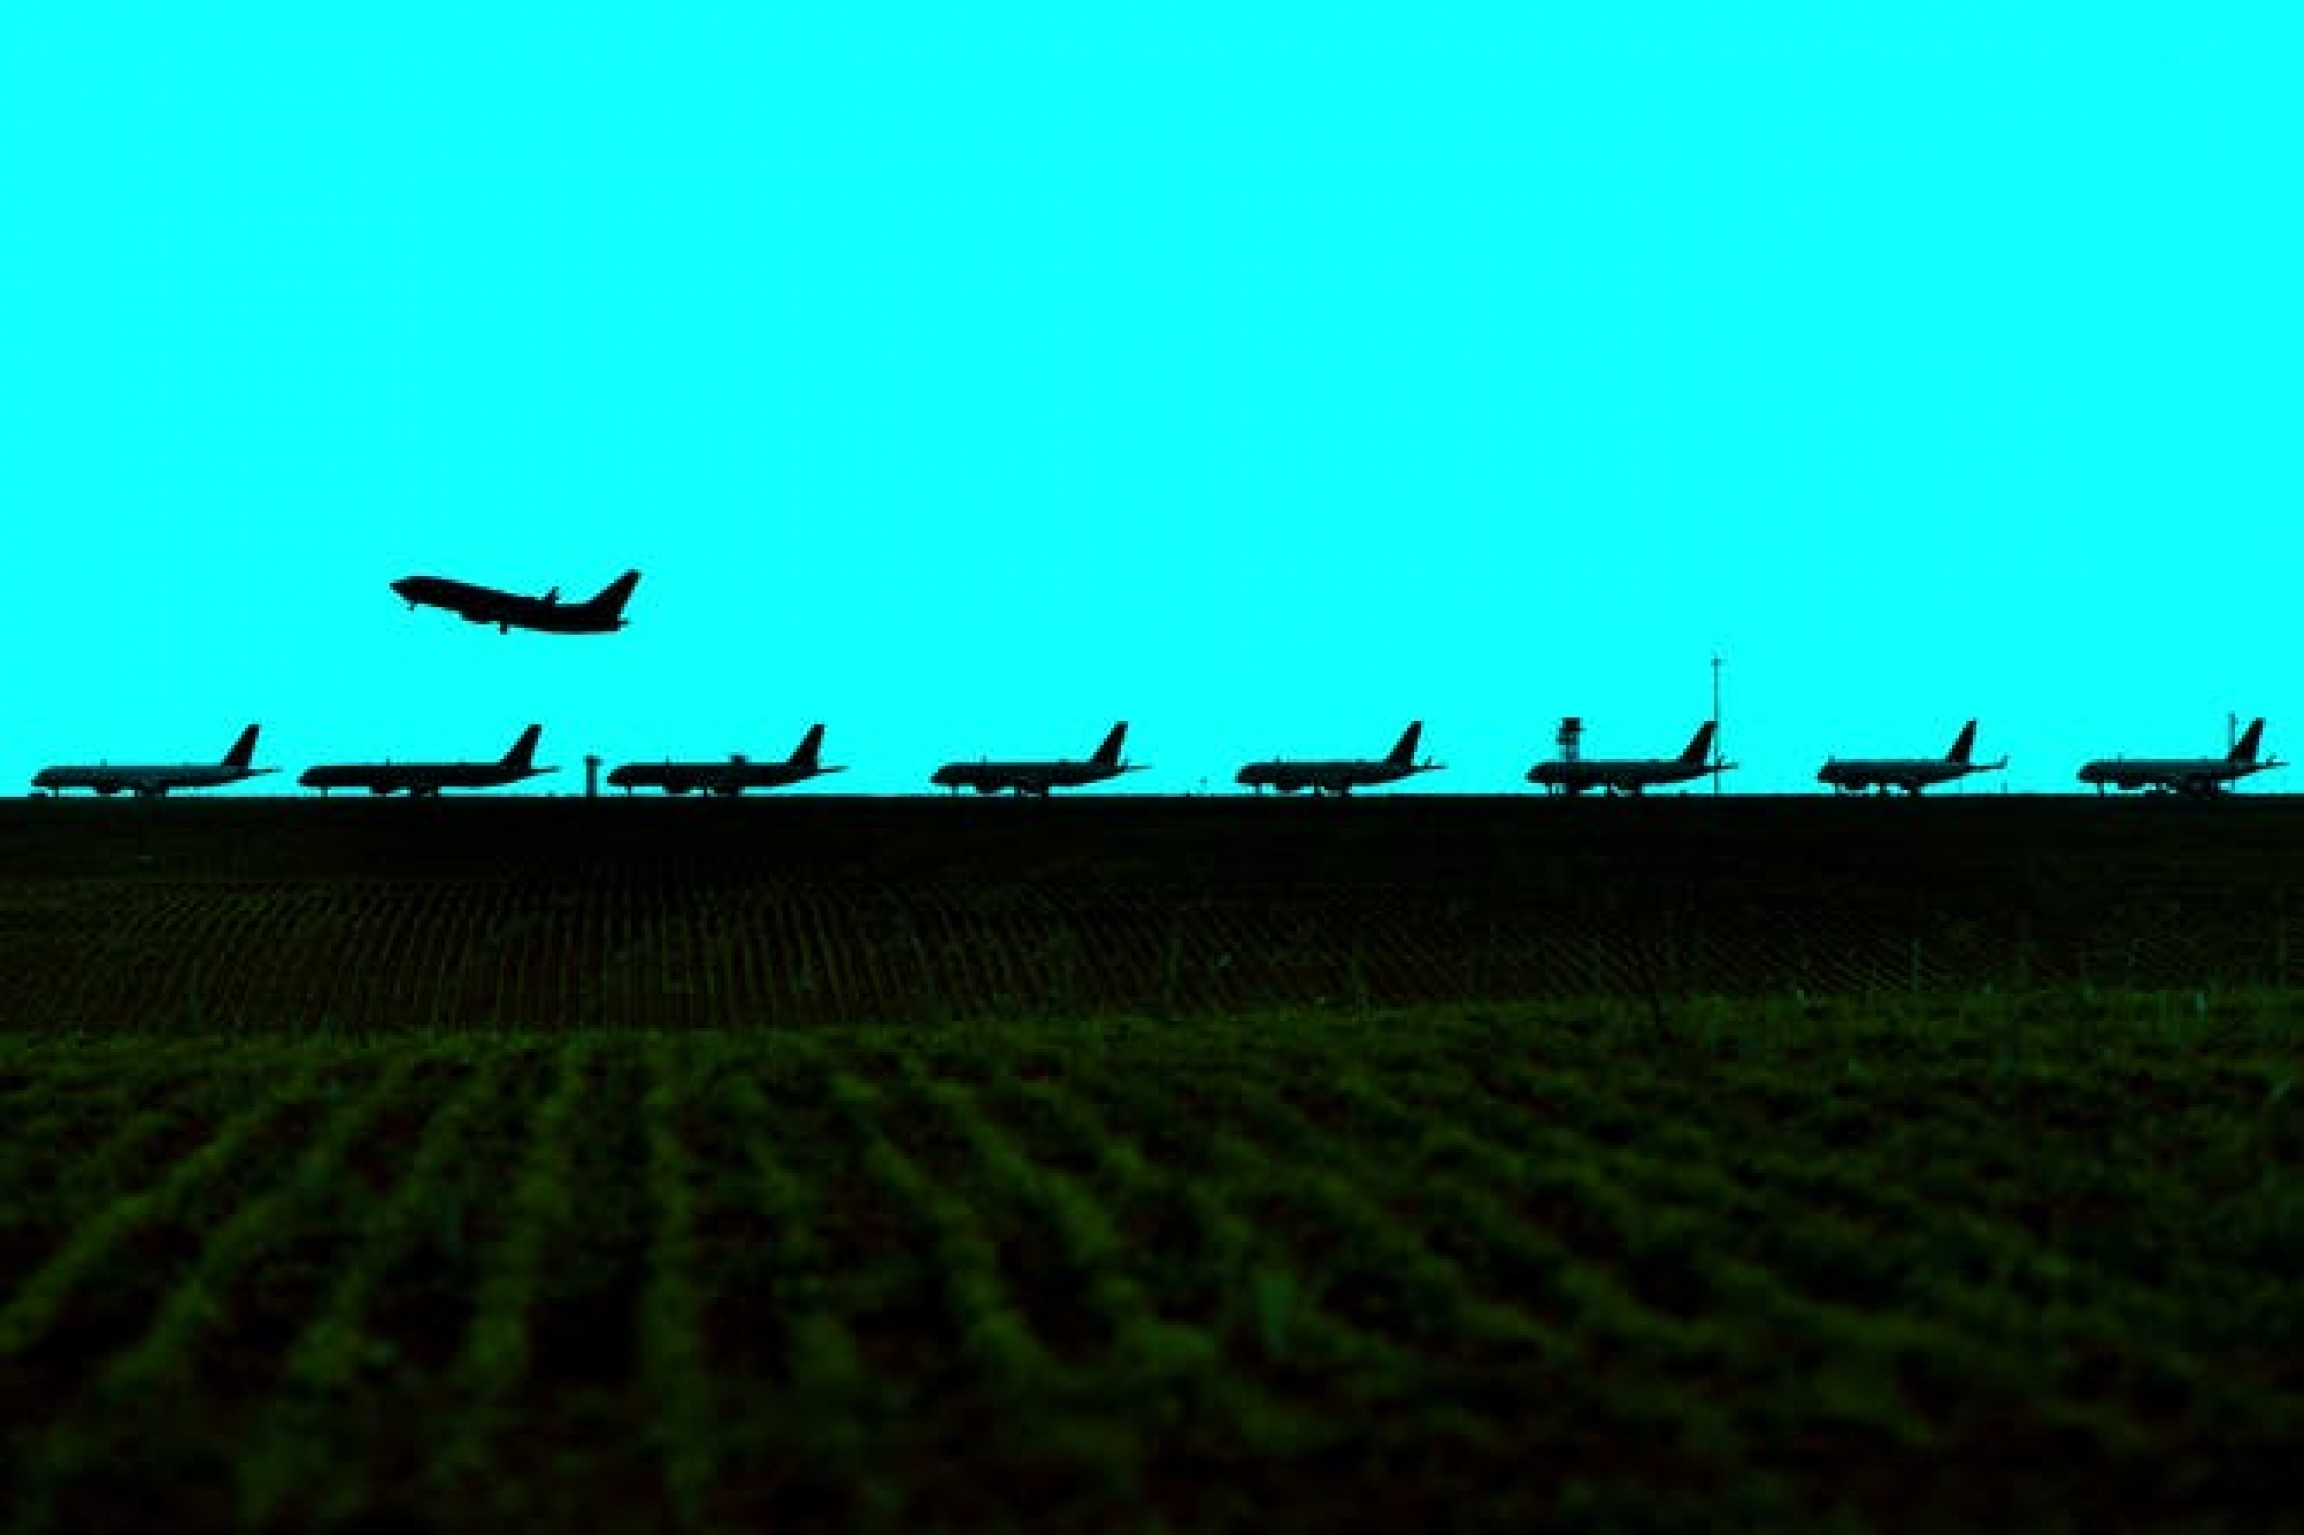 A silhouette of passenger jets lined up on a runway.